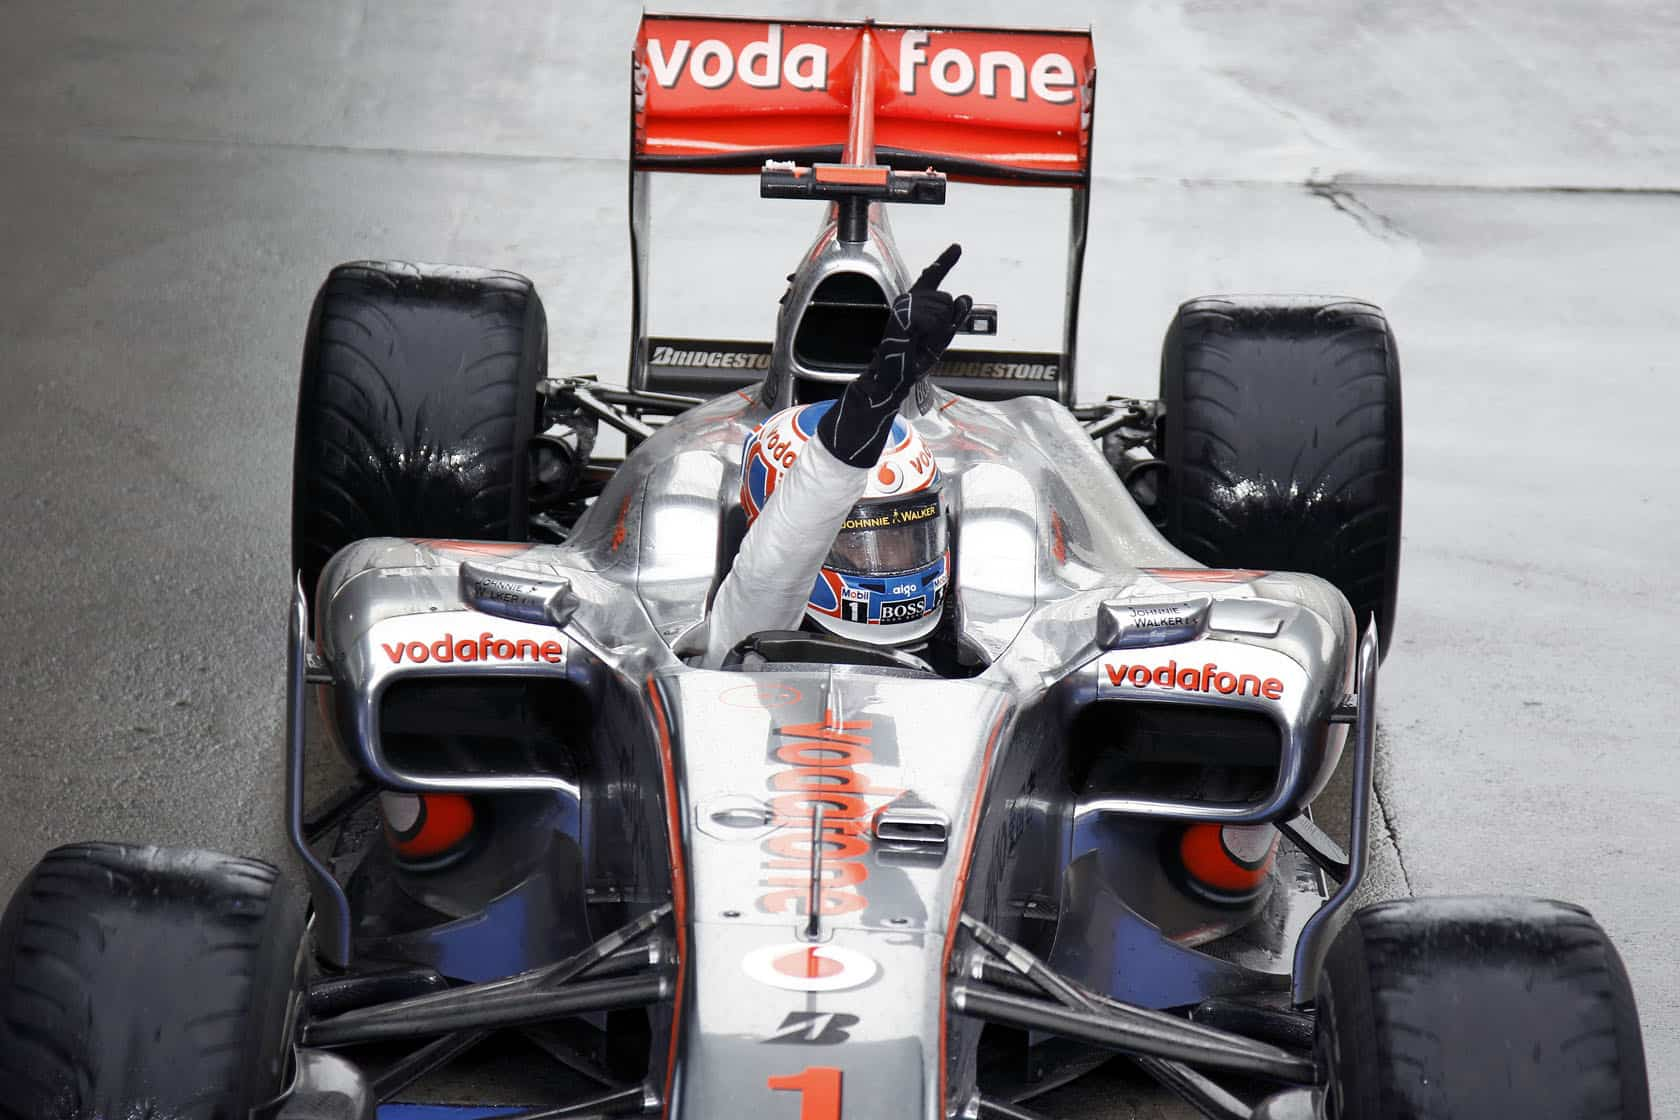 Jenson-Button-McLaren-Mercedes-MP4-25-Chinese-GP-F1-2010-win